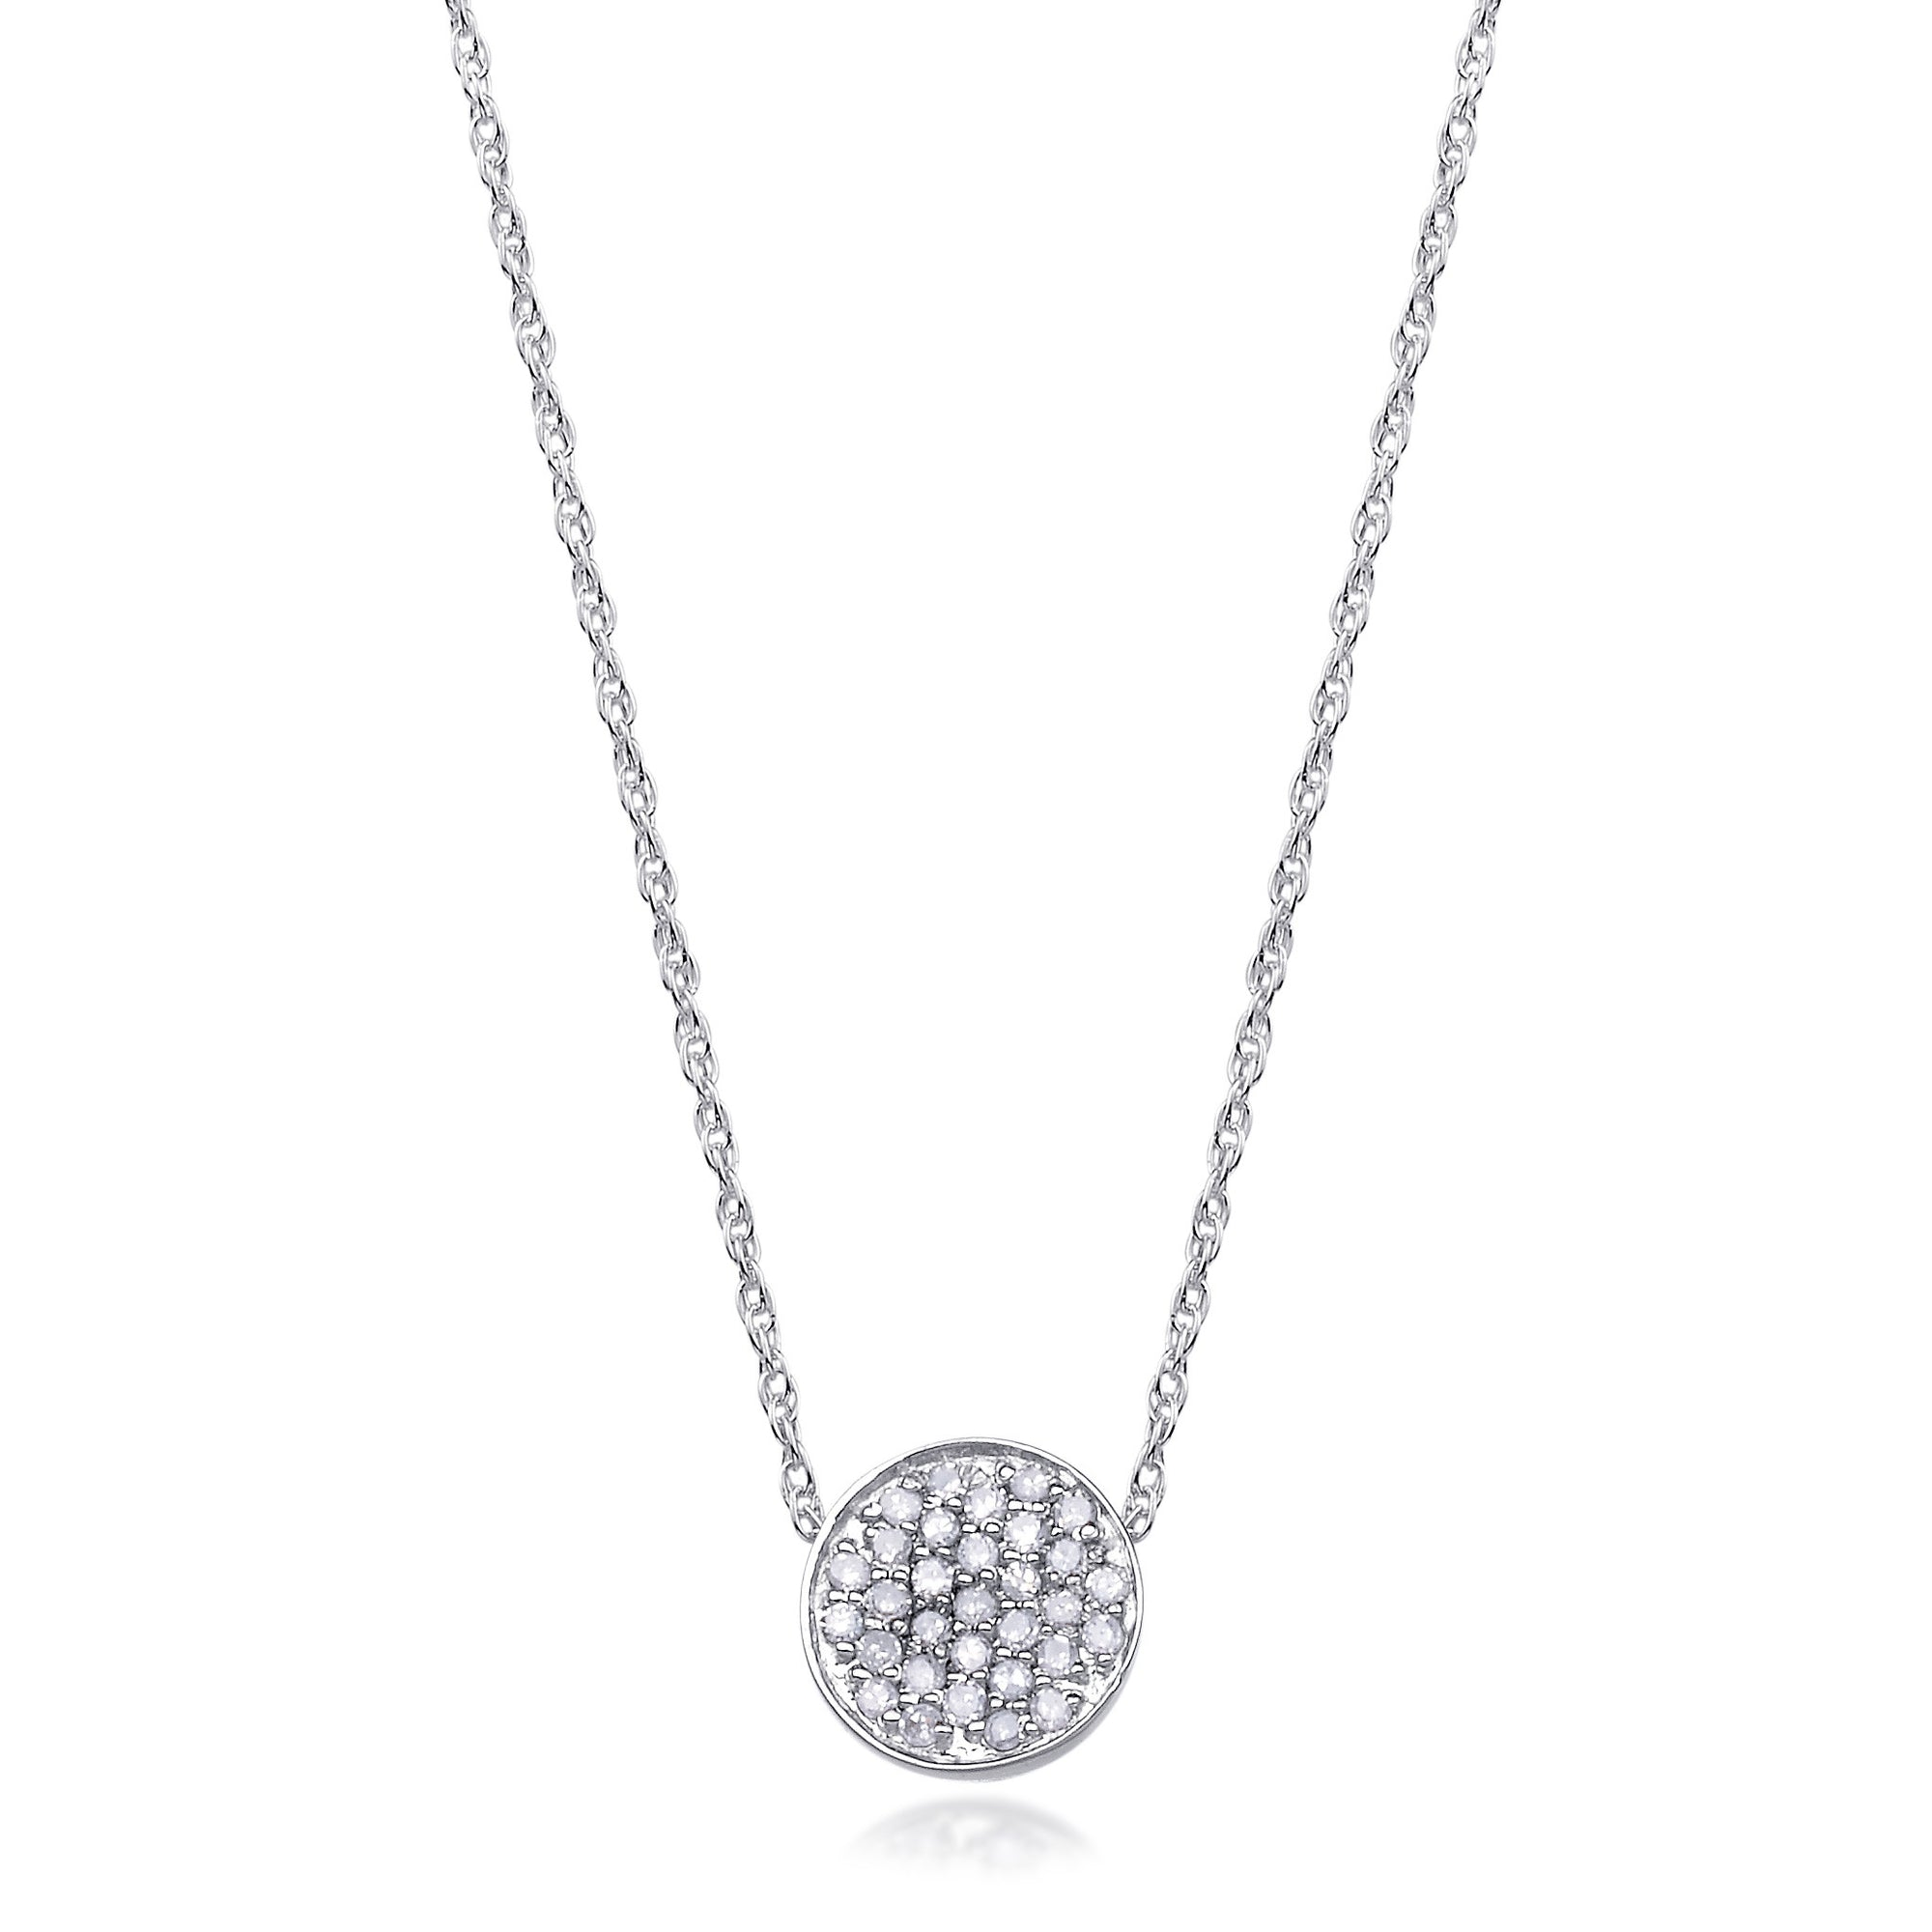 Bling diamond pave small disc pendant necklace in 14k white gold diamond pave disc pendant necklace in white gold aloadofball